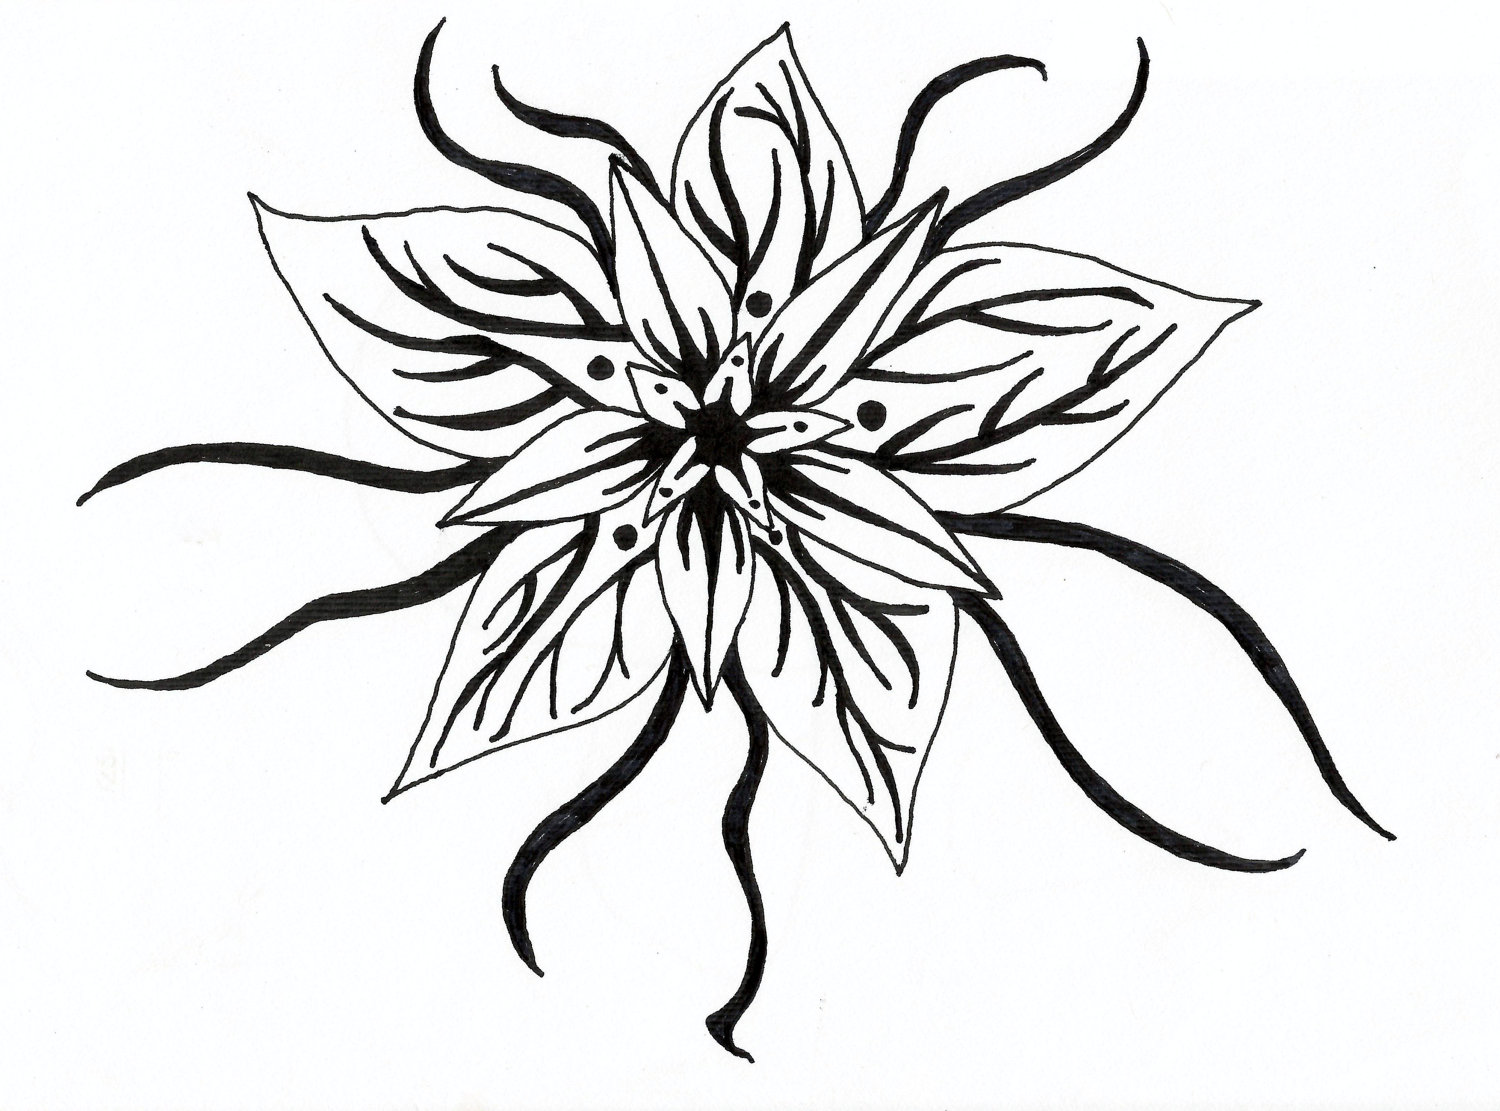 Flowers black and white drawing clipart best for Ink drawings easy